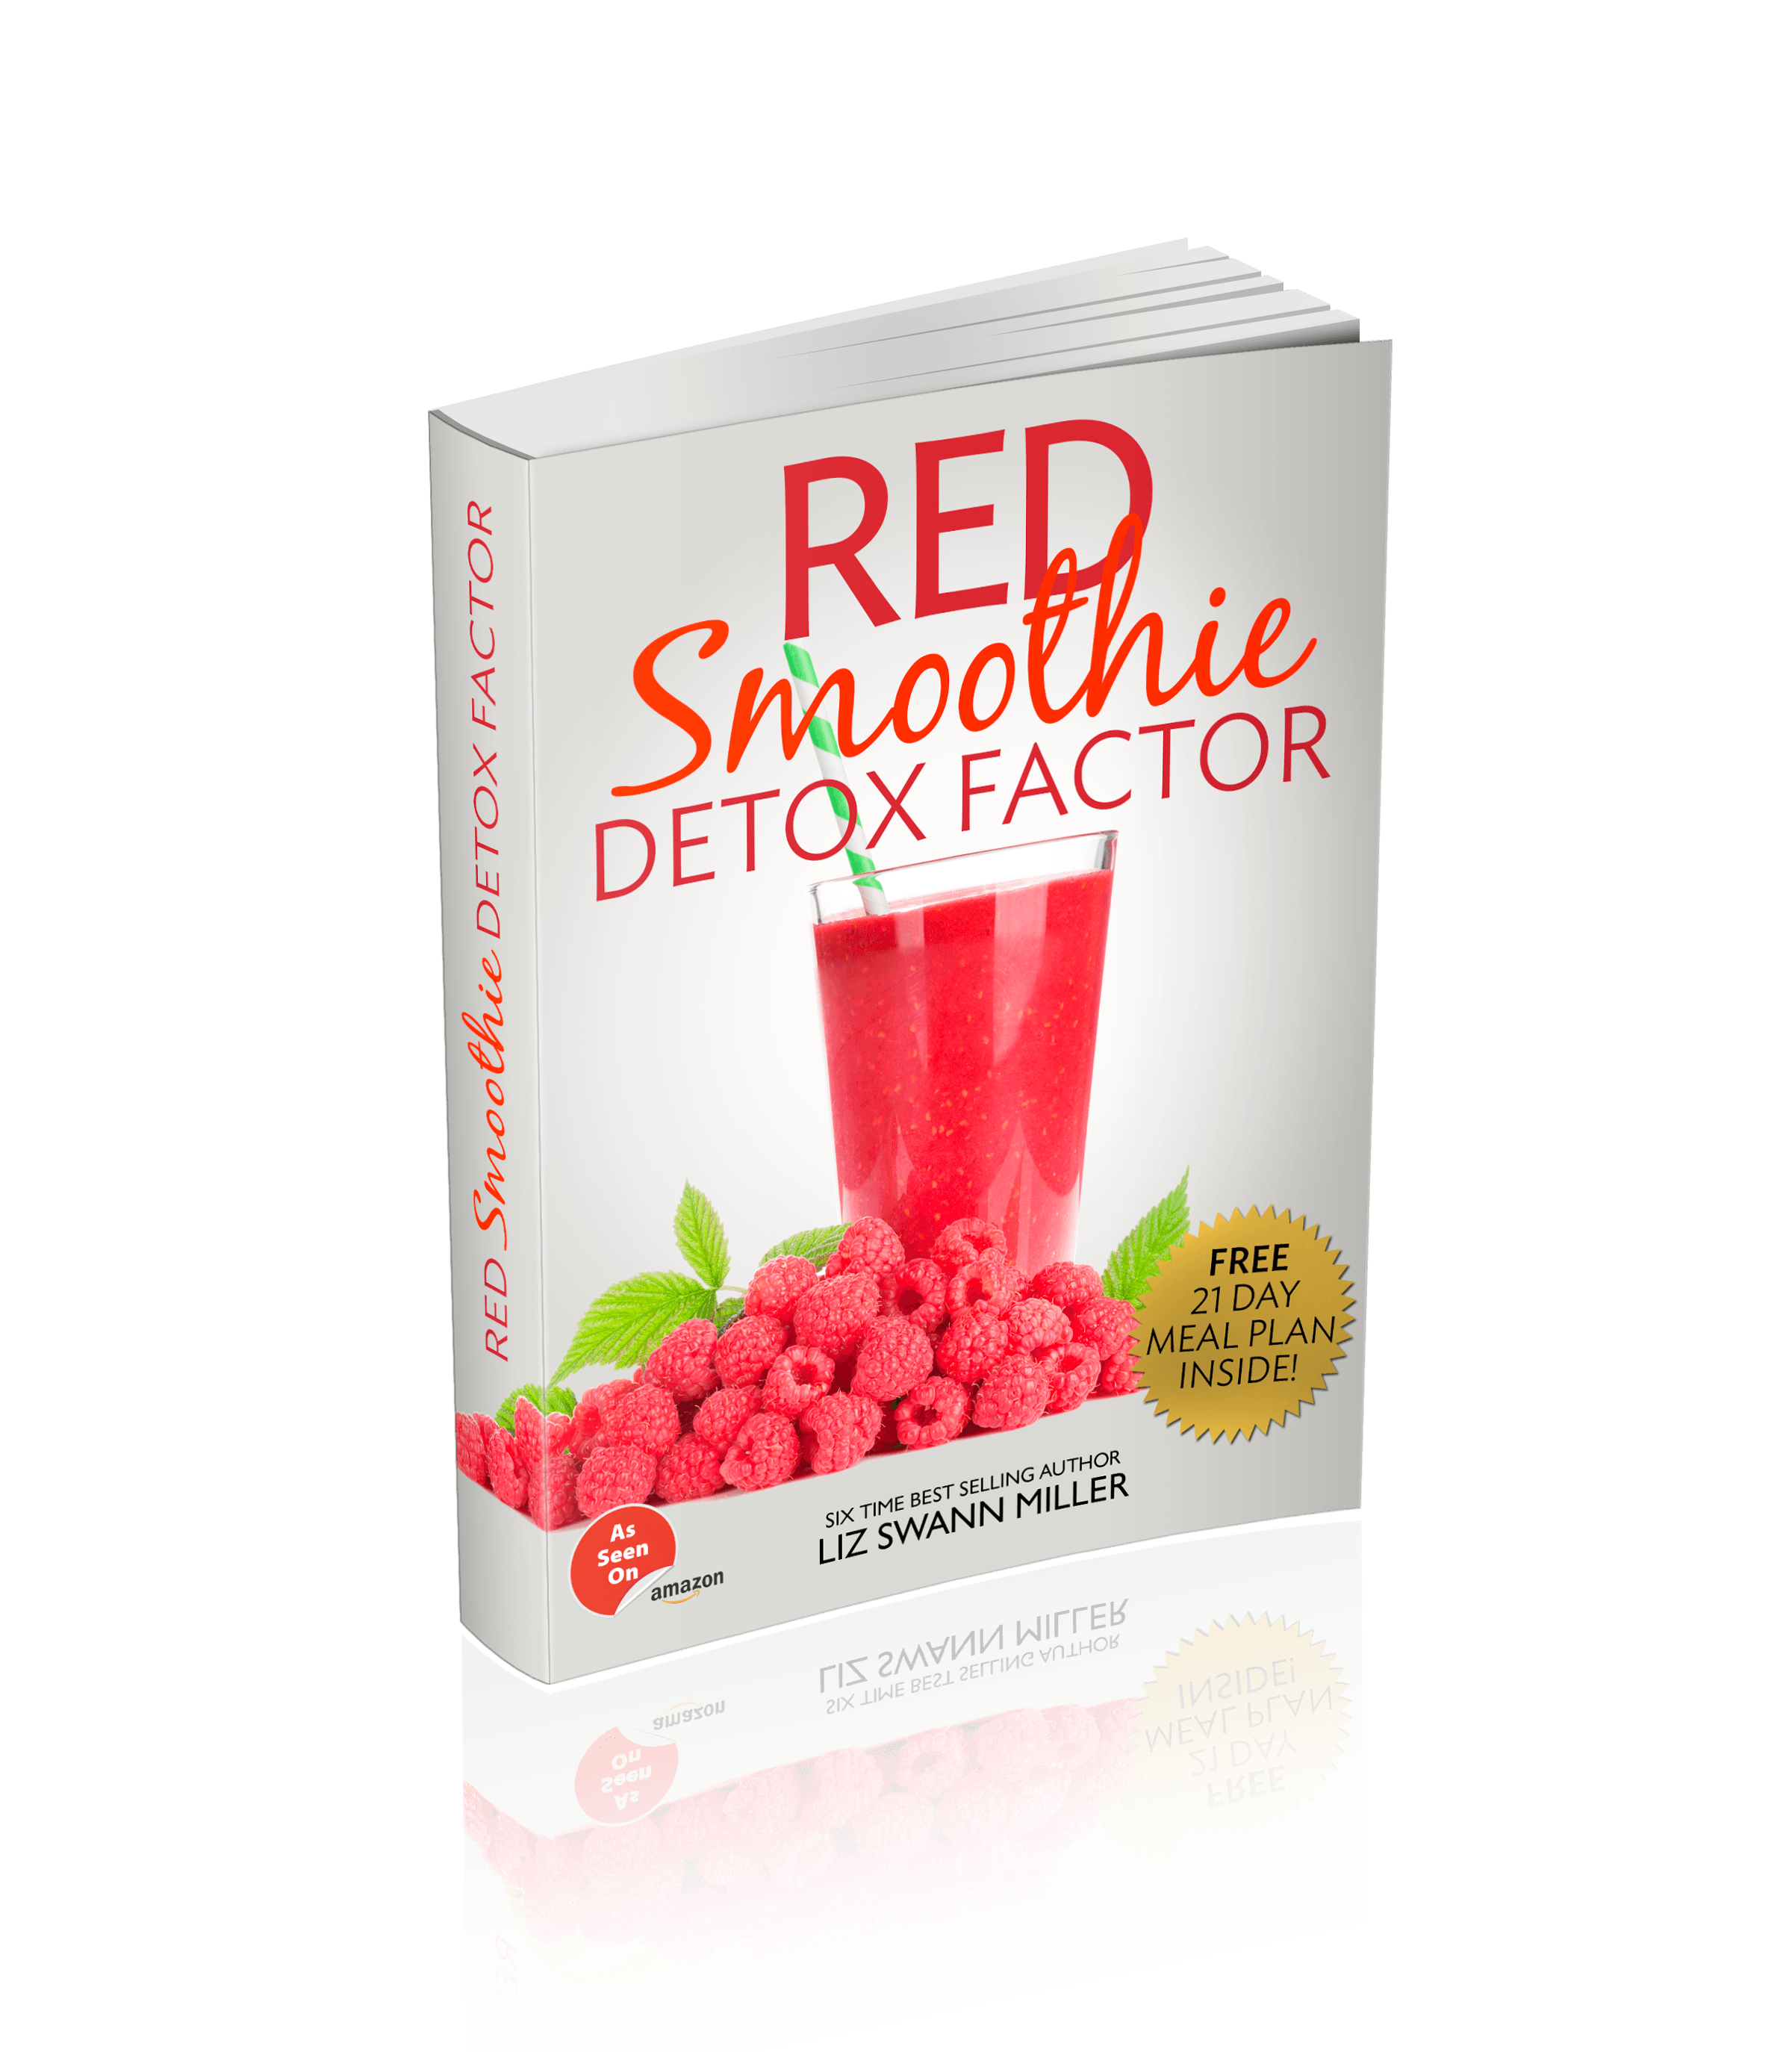 The Red Smoothie Detox Factor